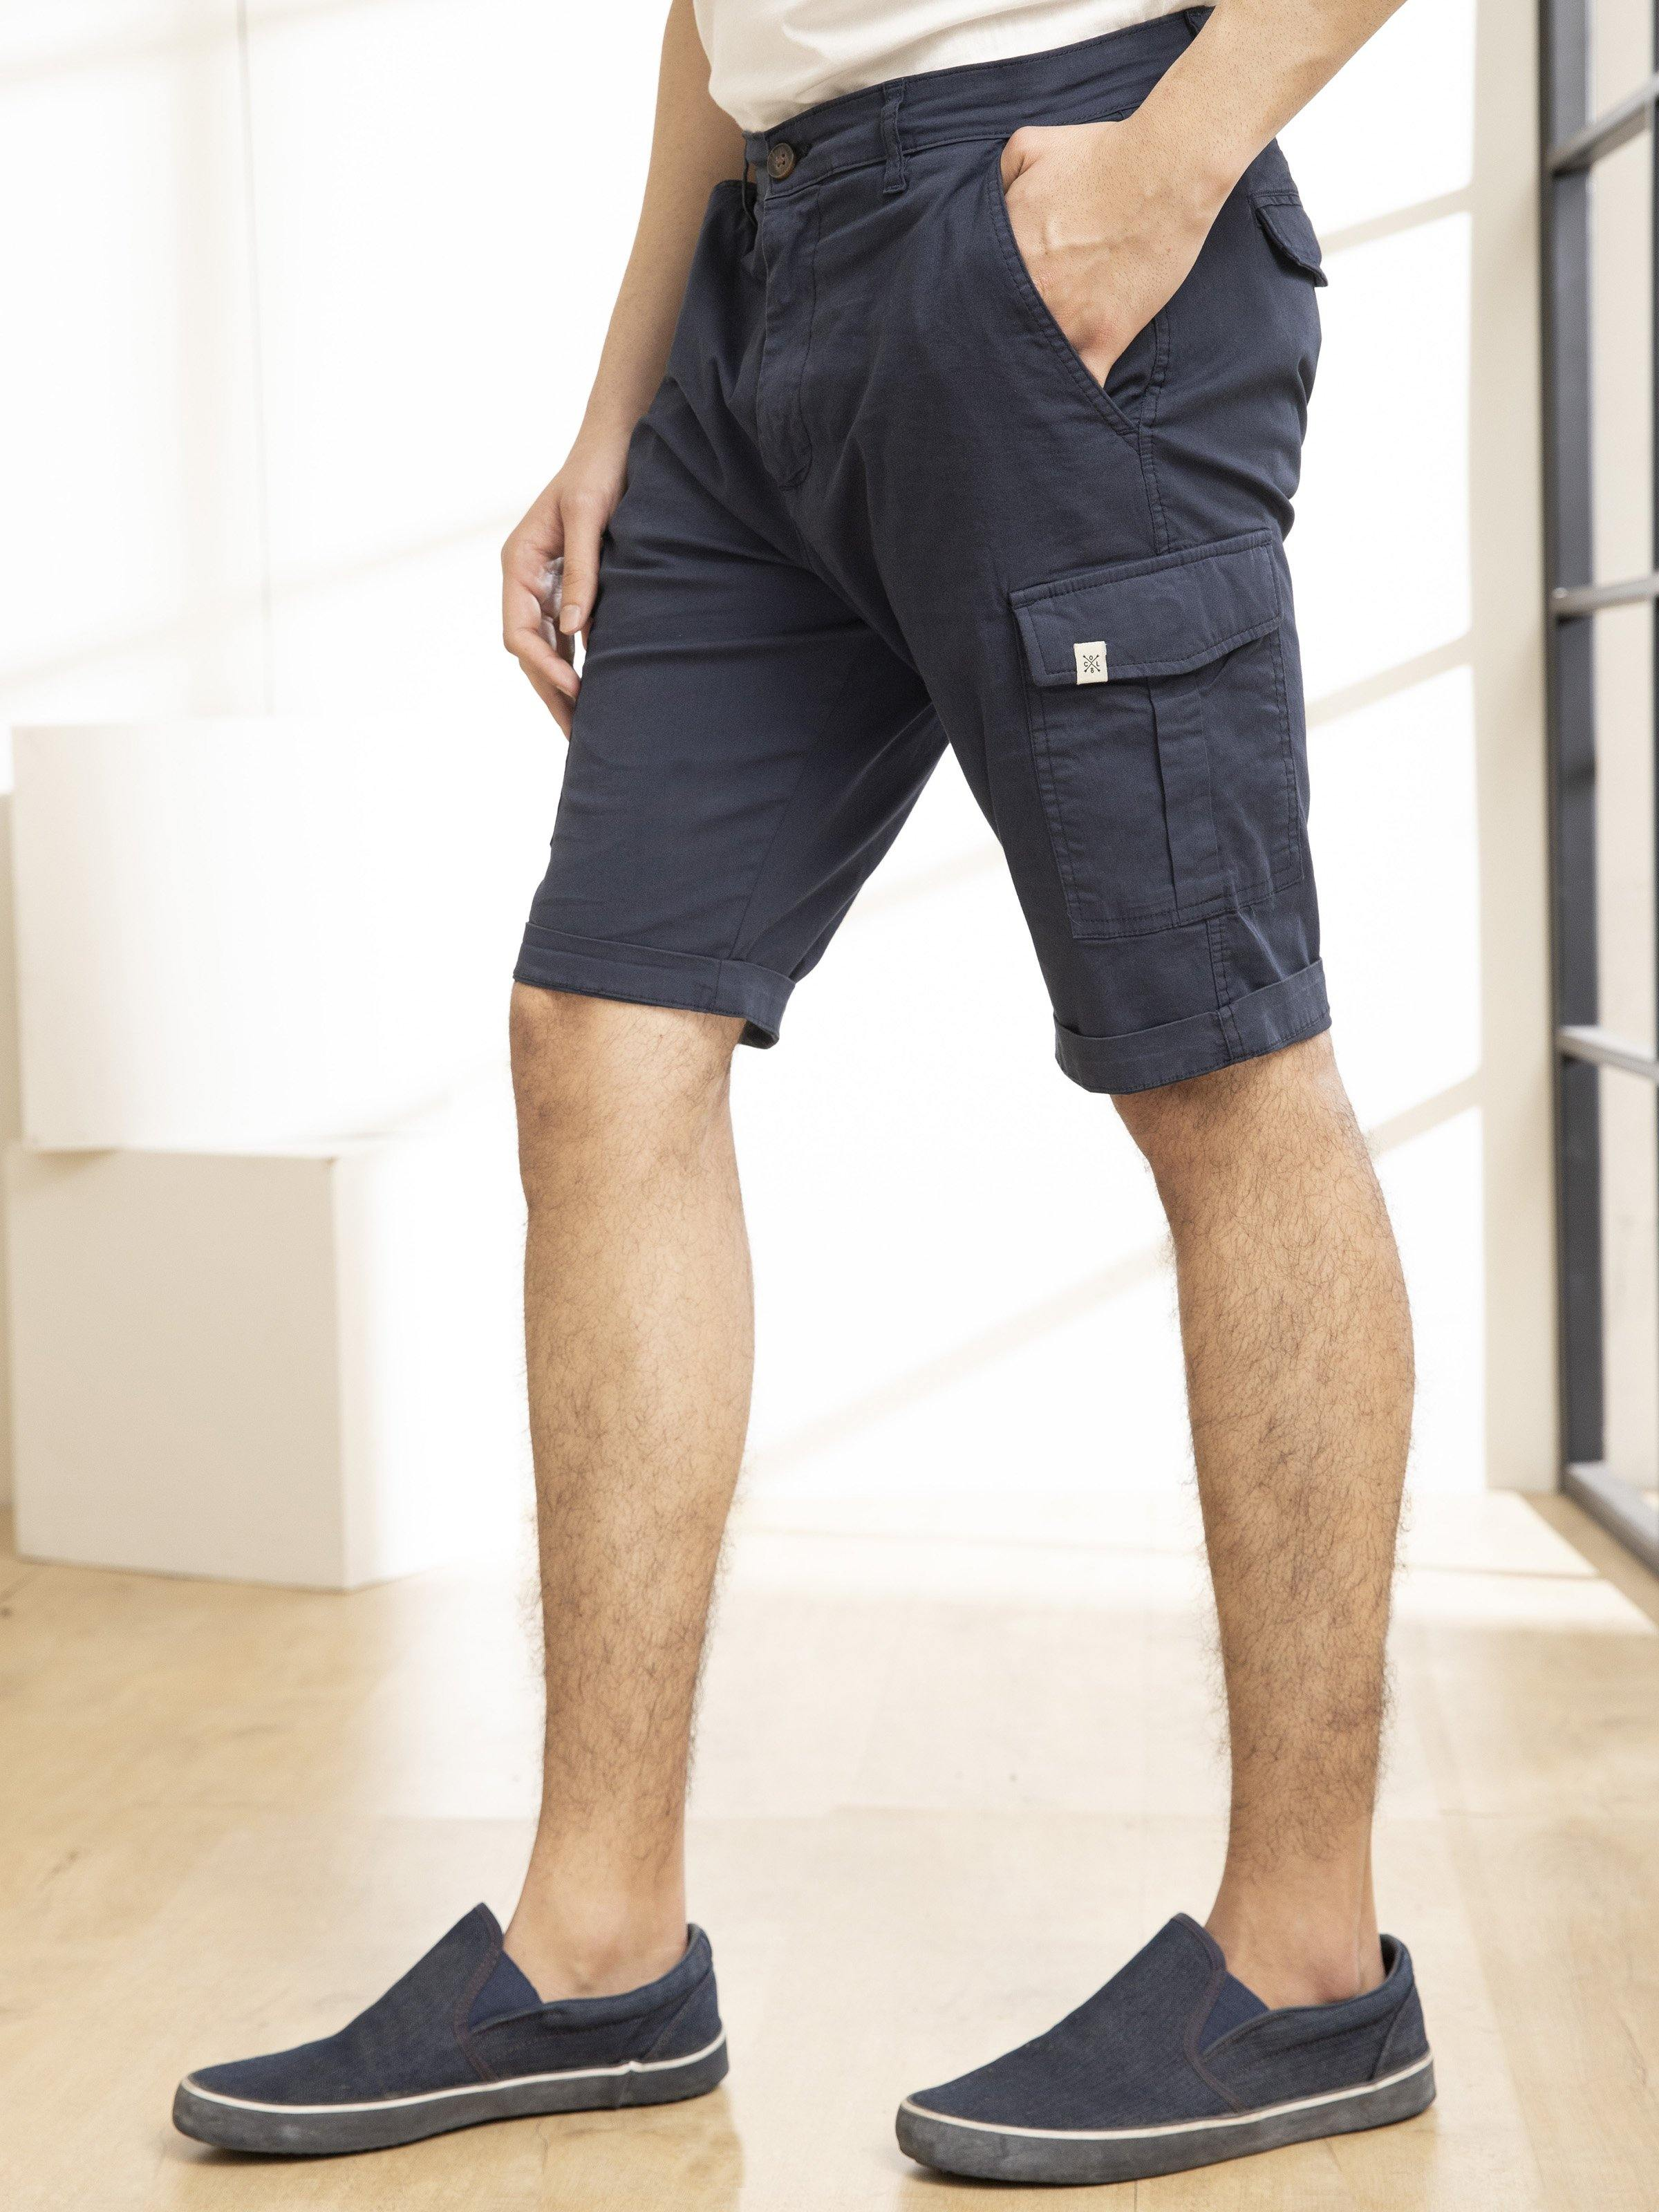 CARGO SHORTS NAVY - Charcoal Clothing